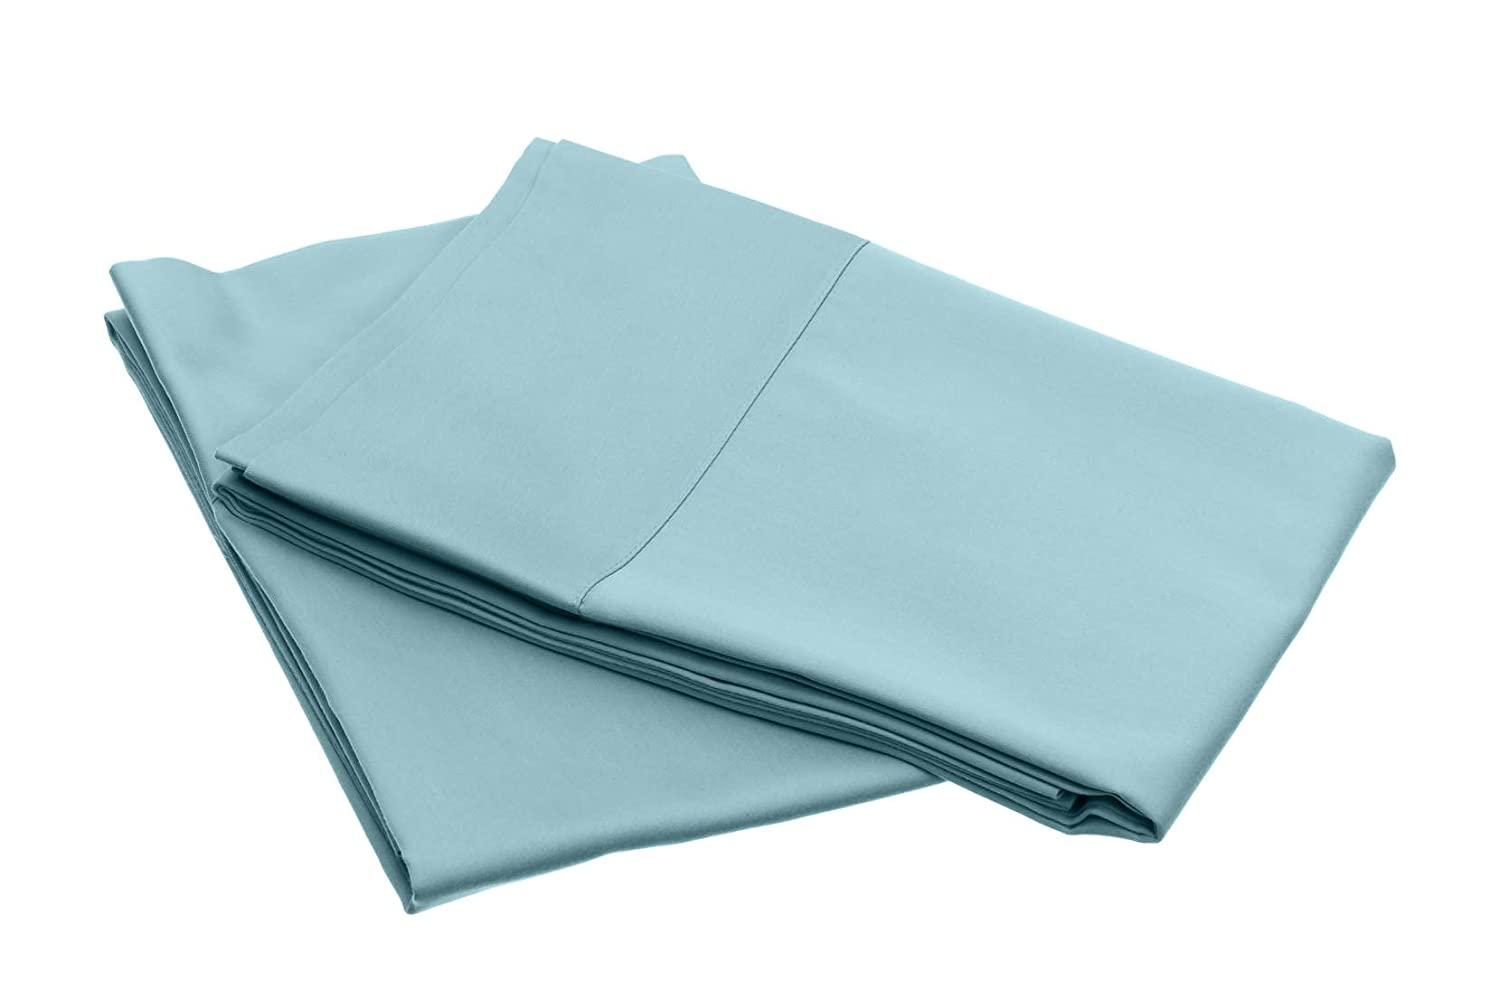 Amazon.com: Outlast Temperature Regulating Hypoallergenic Sheet Set – 300 Thread Count, 40%, 60% Cotton Sateen Weave, Lake Blue, Cal King: Home & Kitchen